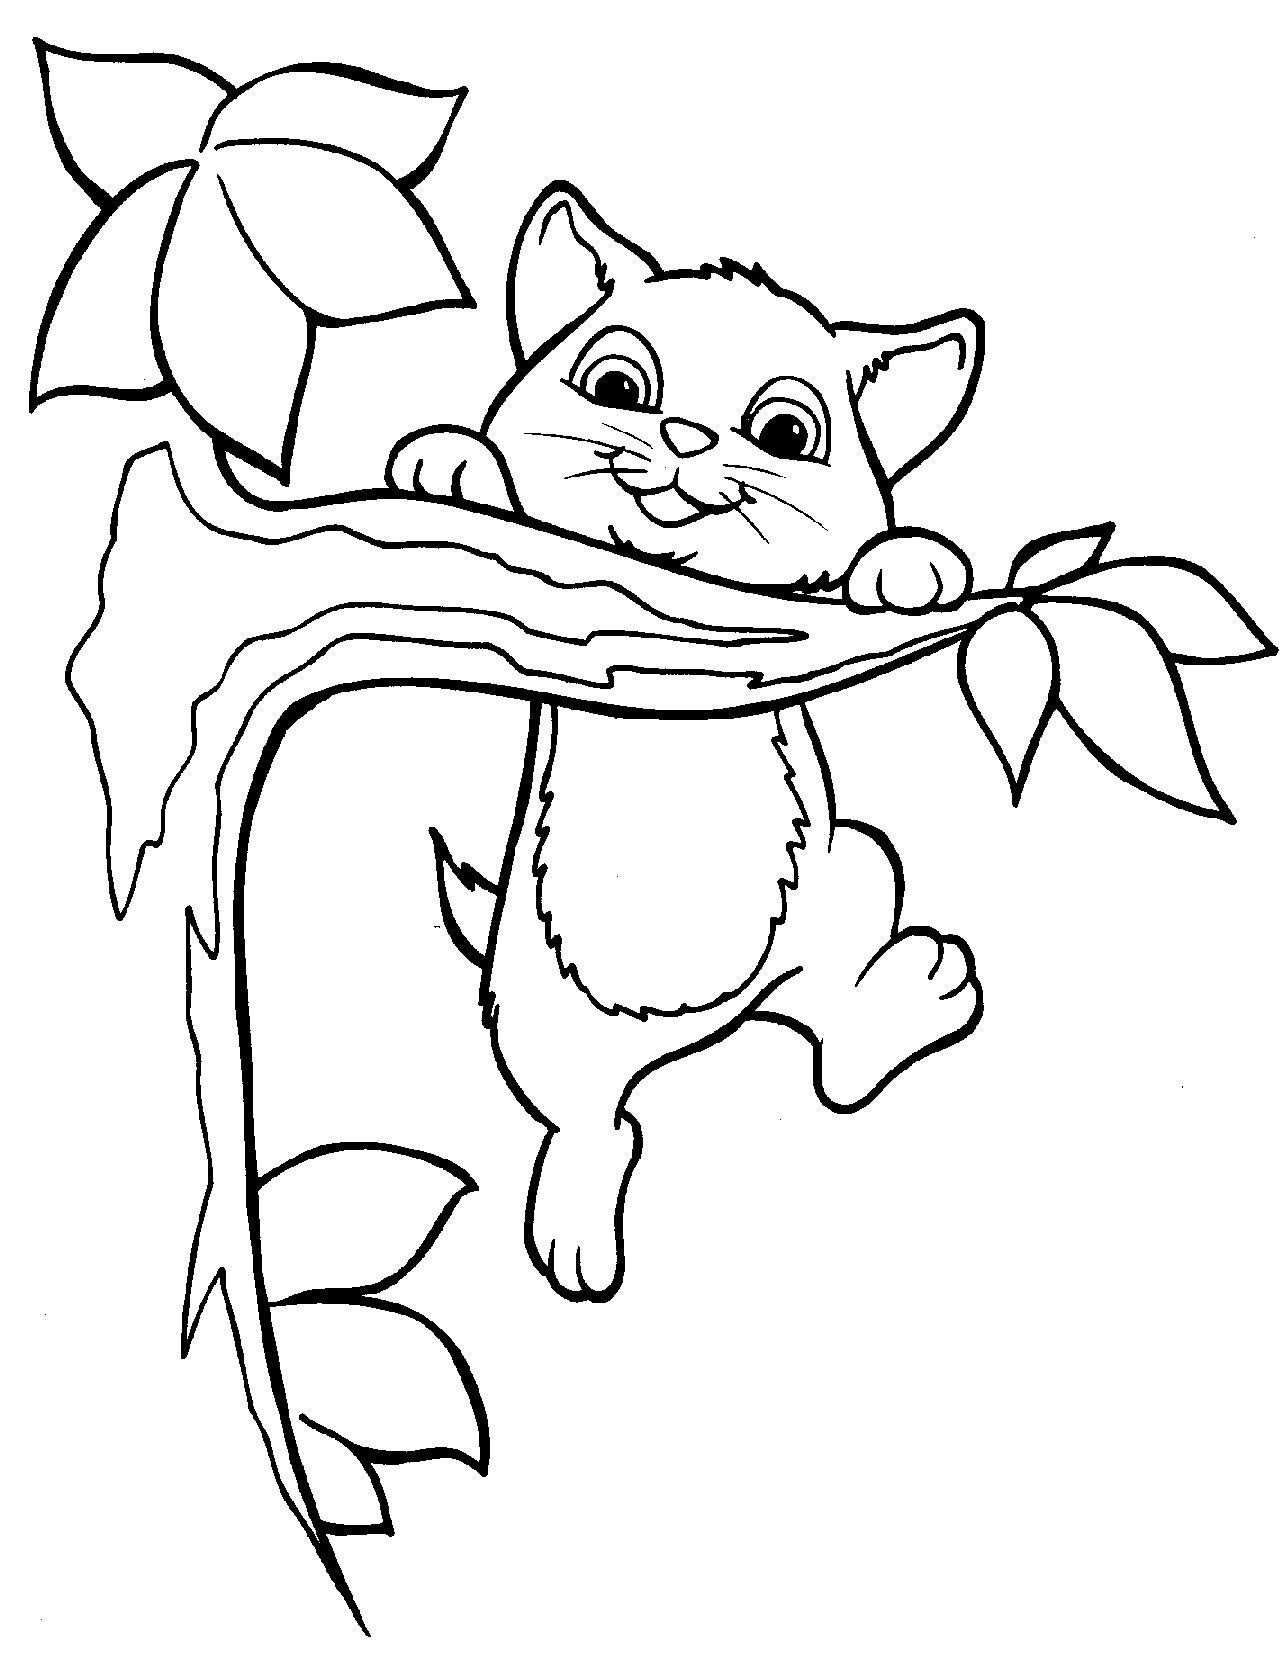 Cute Kitten Coloring Pages Idea Animal Coloring Pages Cat Coloring Page Kittens Coloring